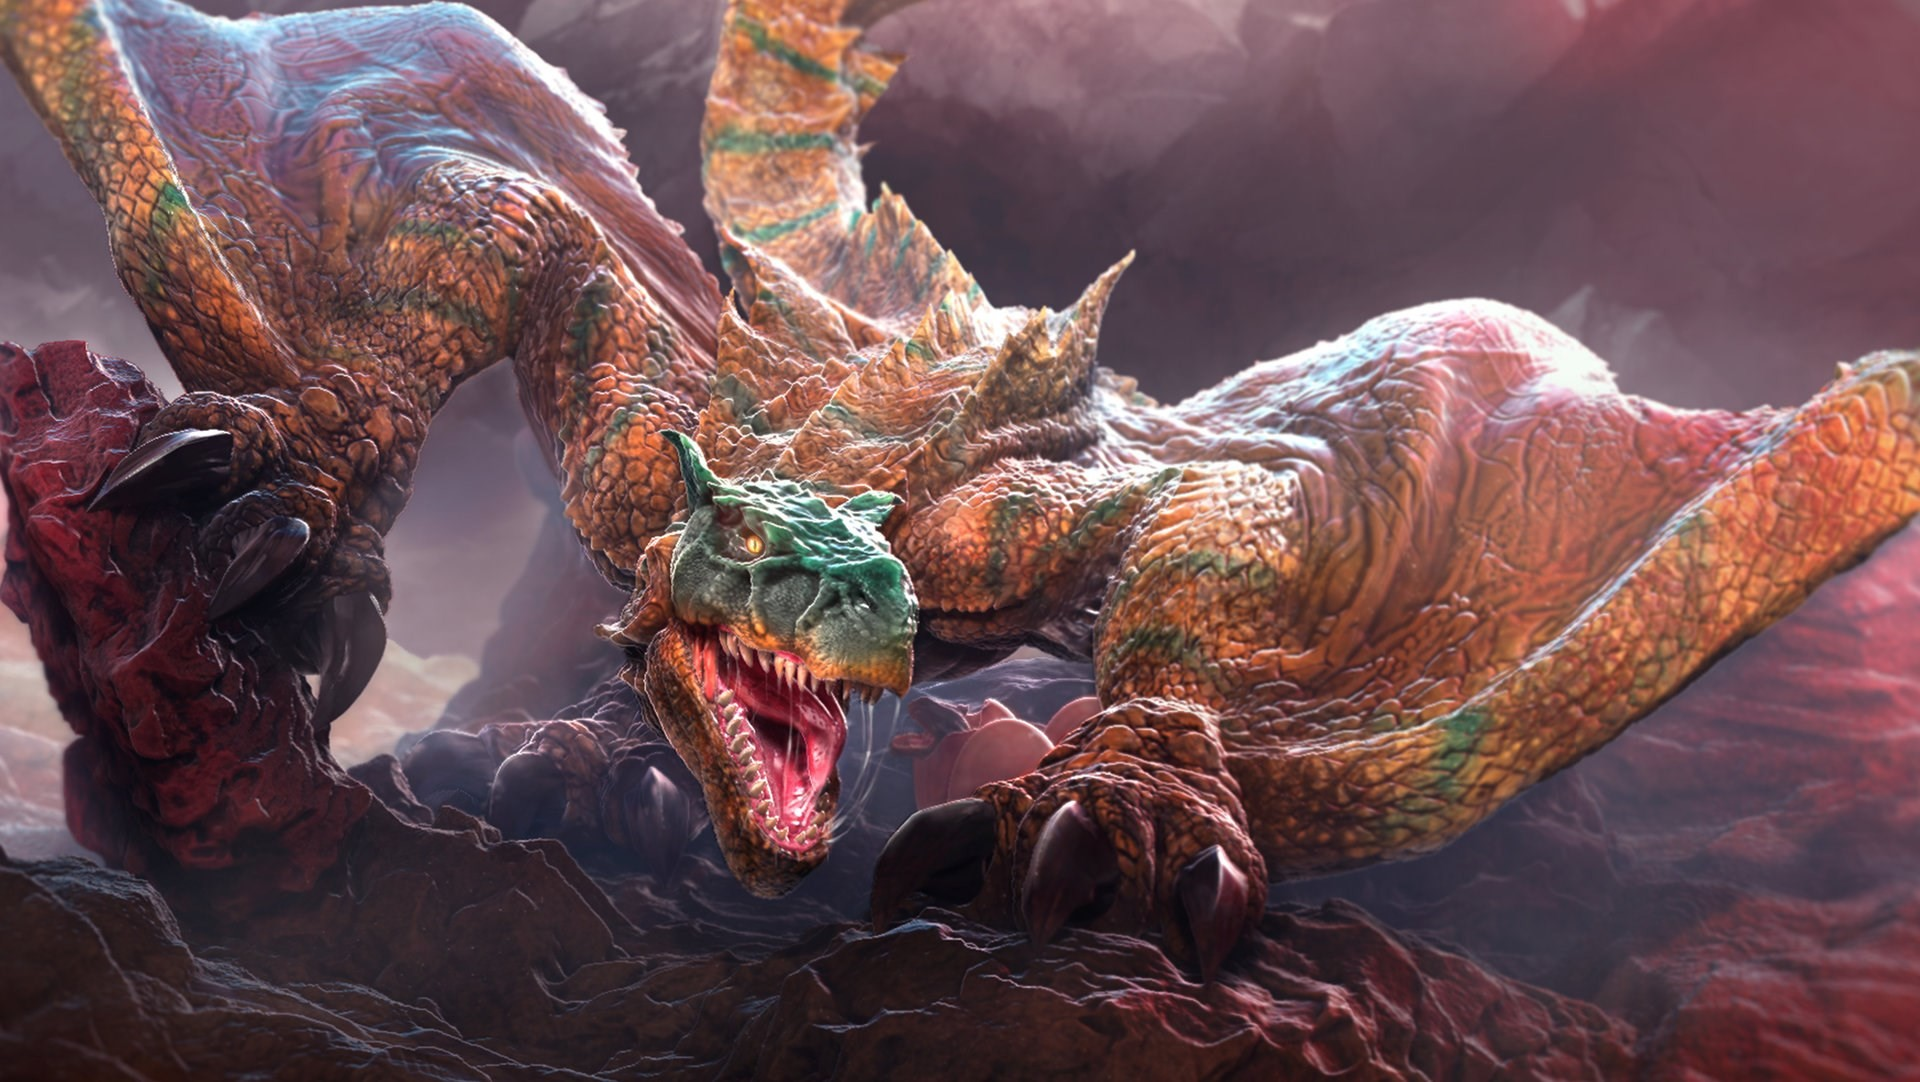 Cool Monster Backgrounds (58+ Images